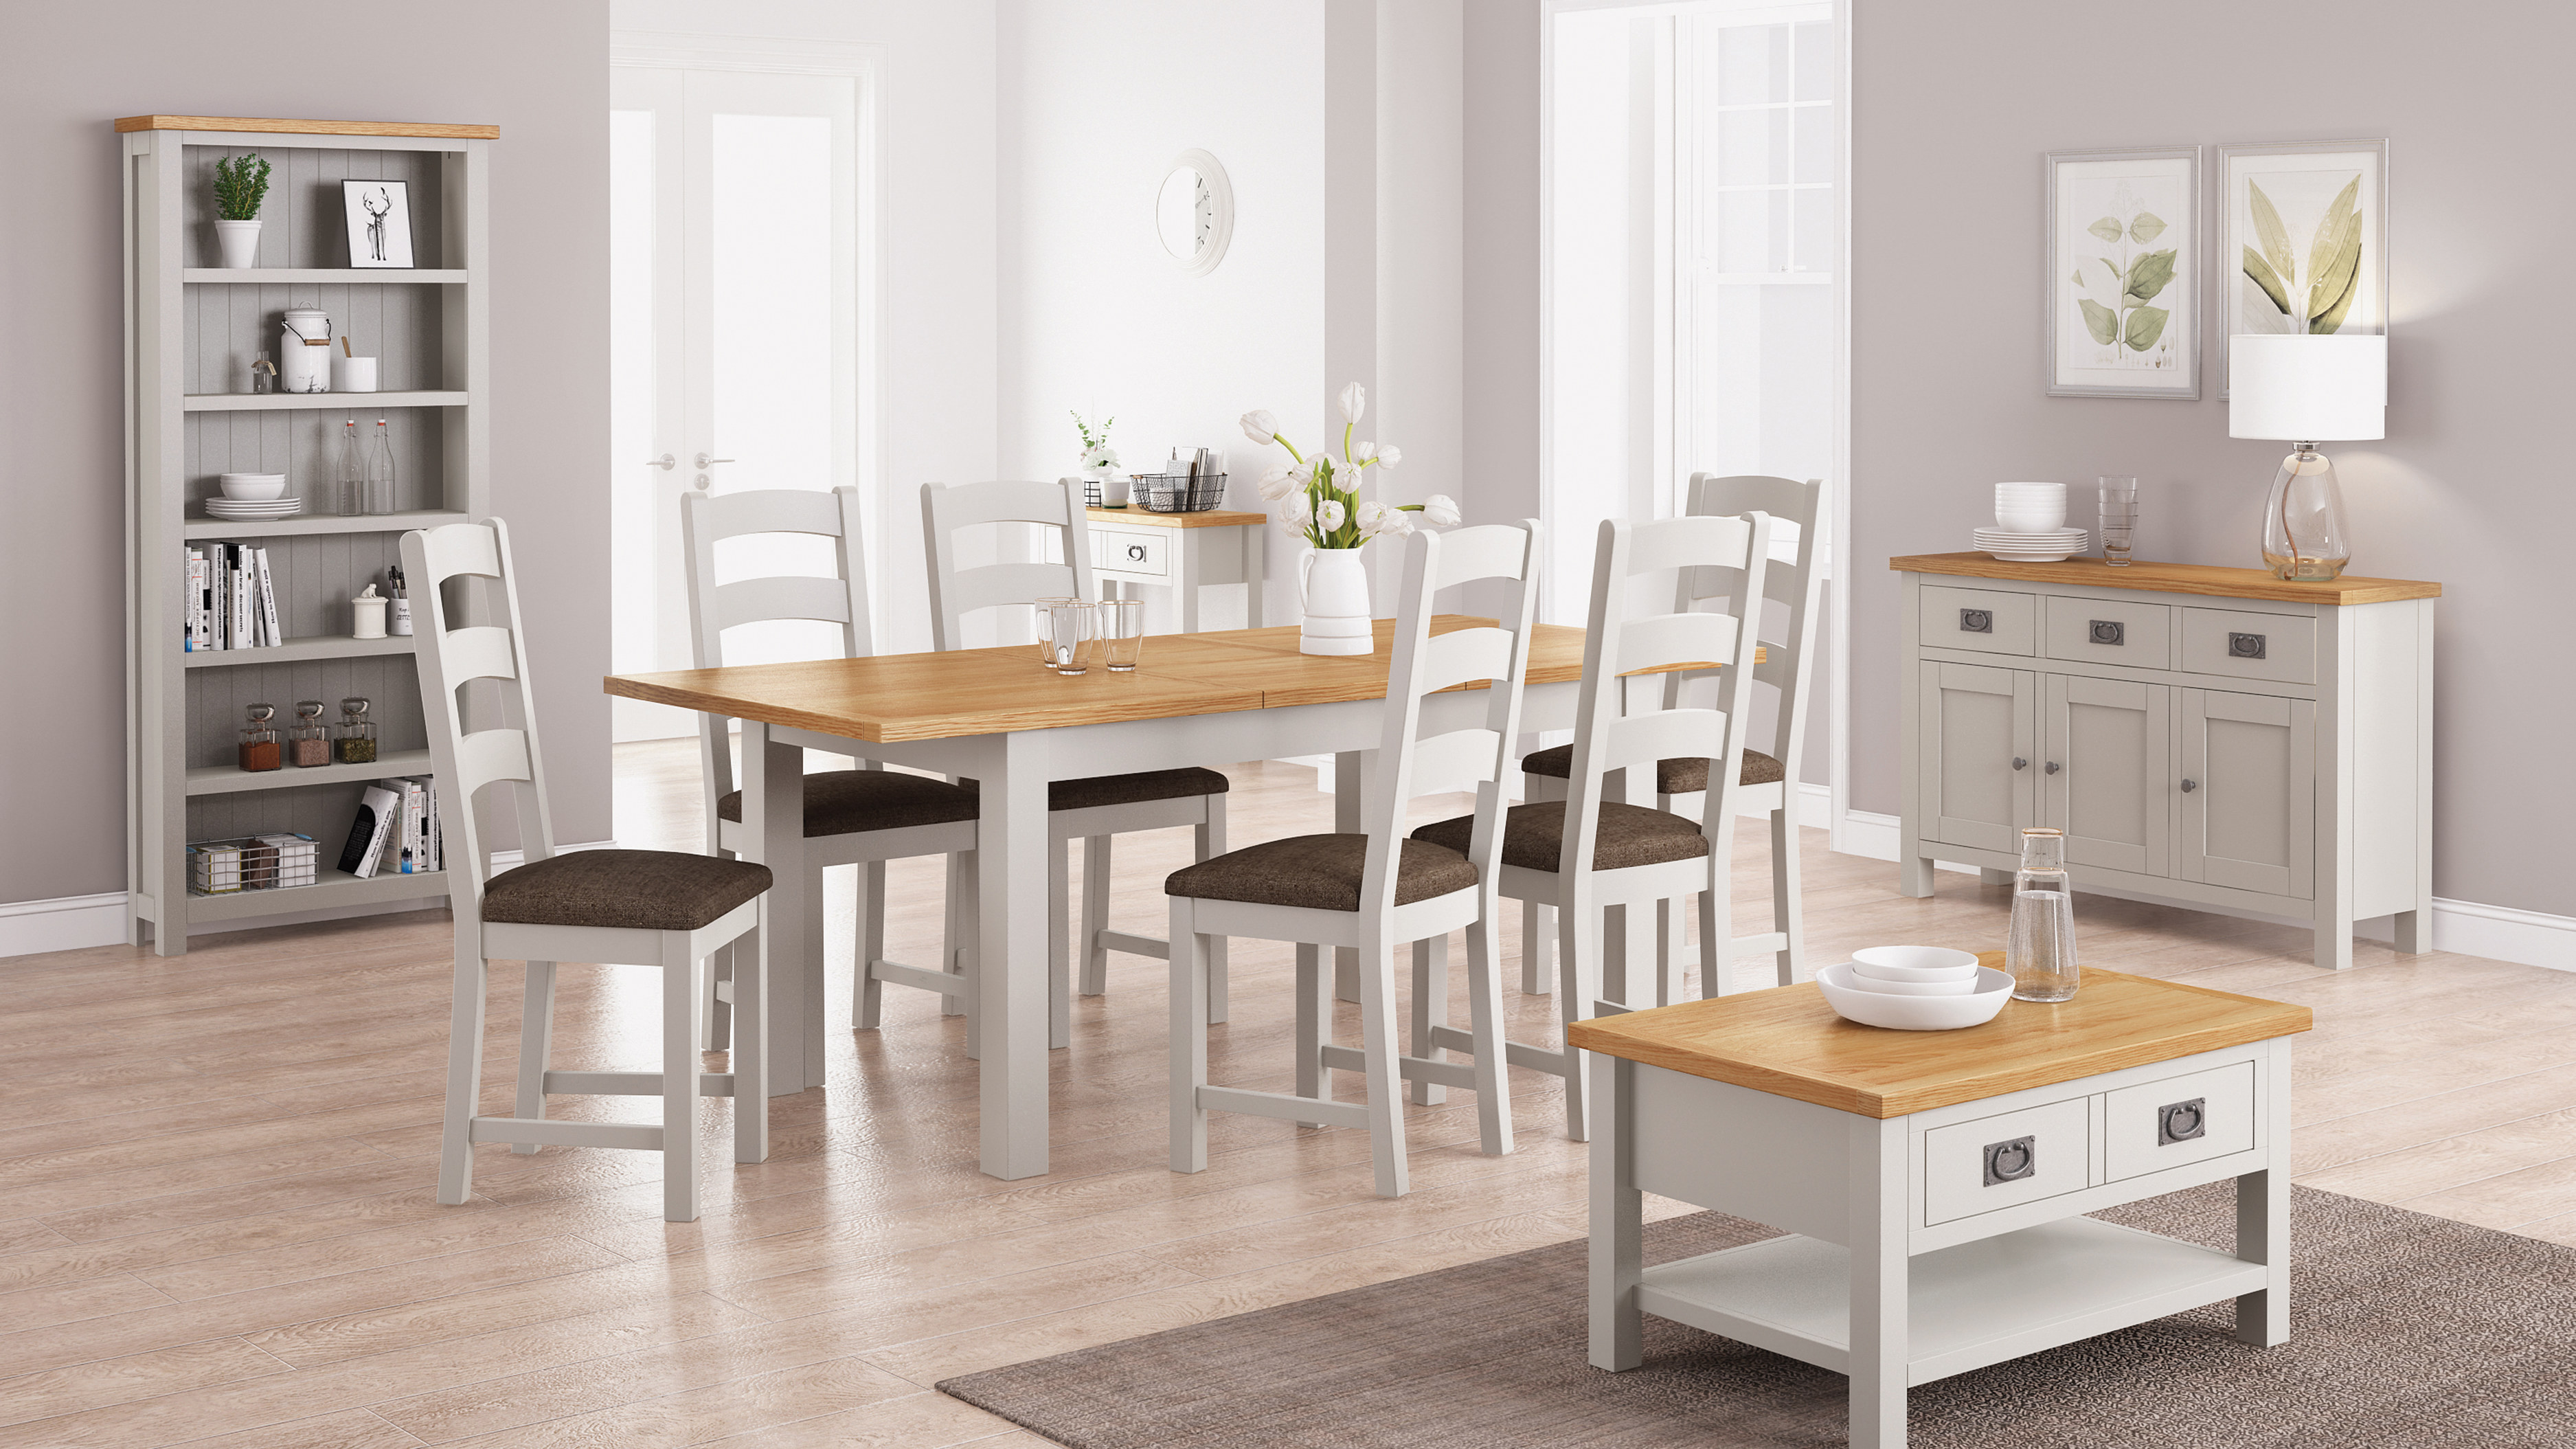 Rustique Home 100% Solid Oak Dining table with six chairs. The Chairs are soft cream color and the table is soft cream with natural oak color top.